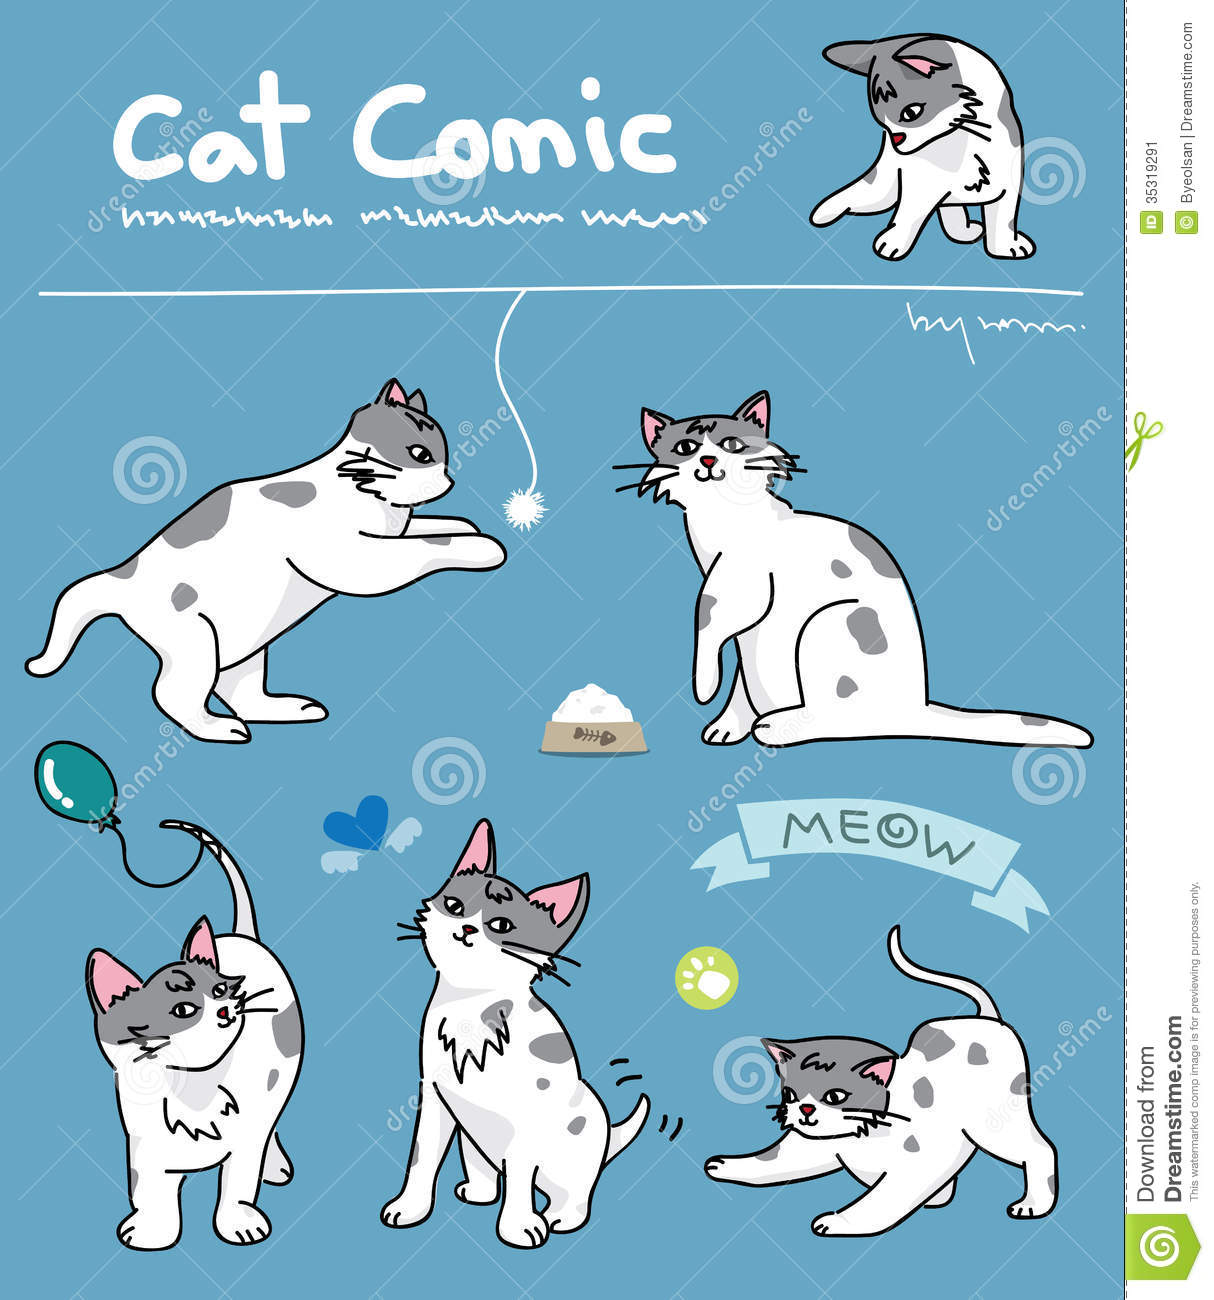 cat comic stock image   image 35319291